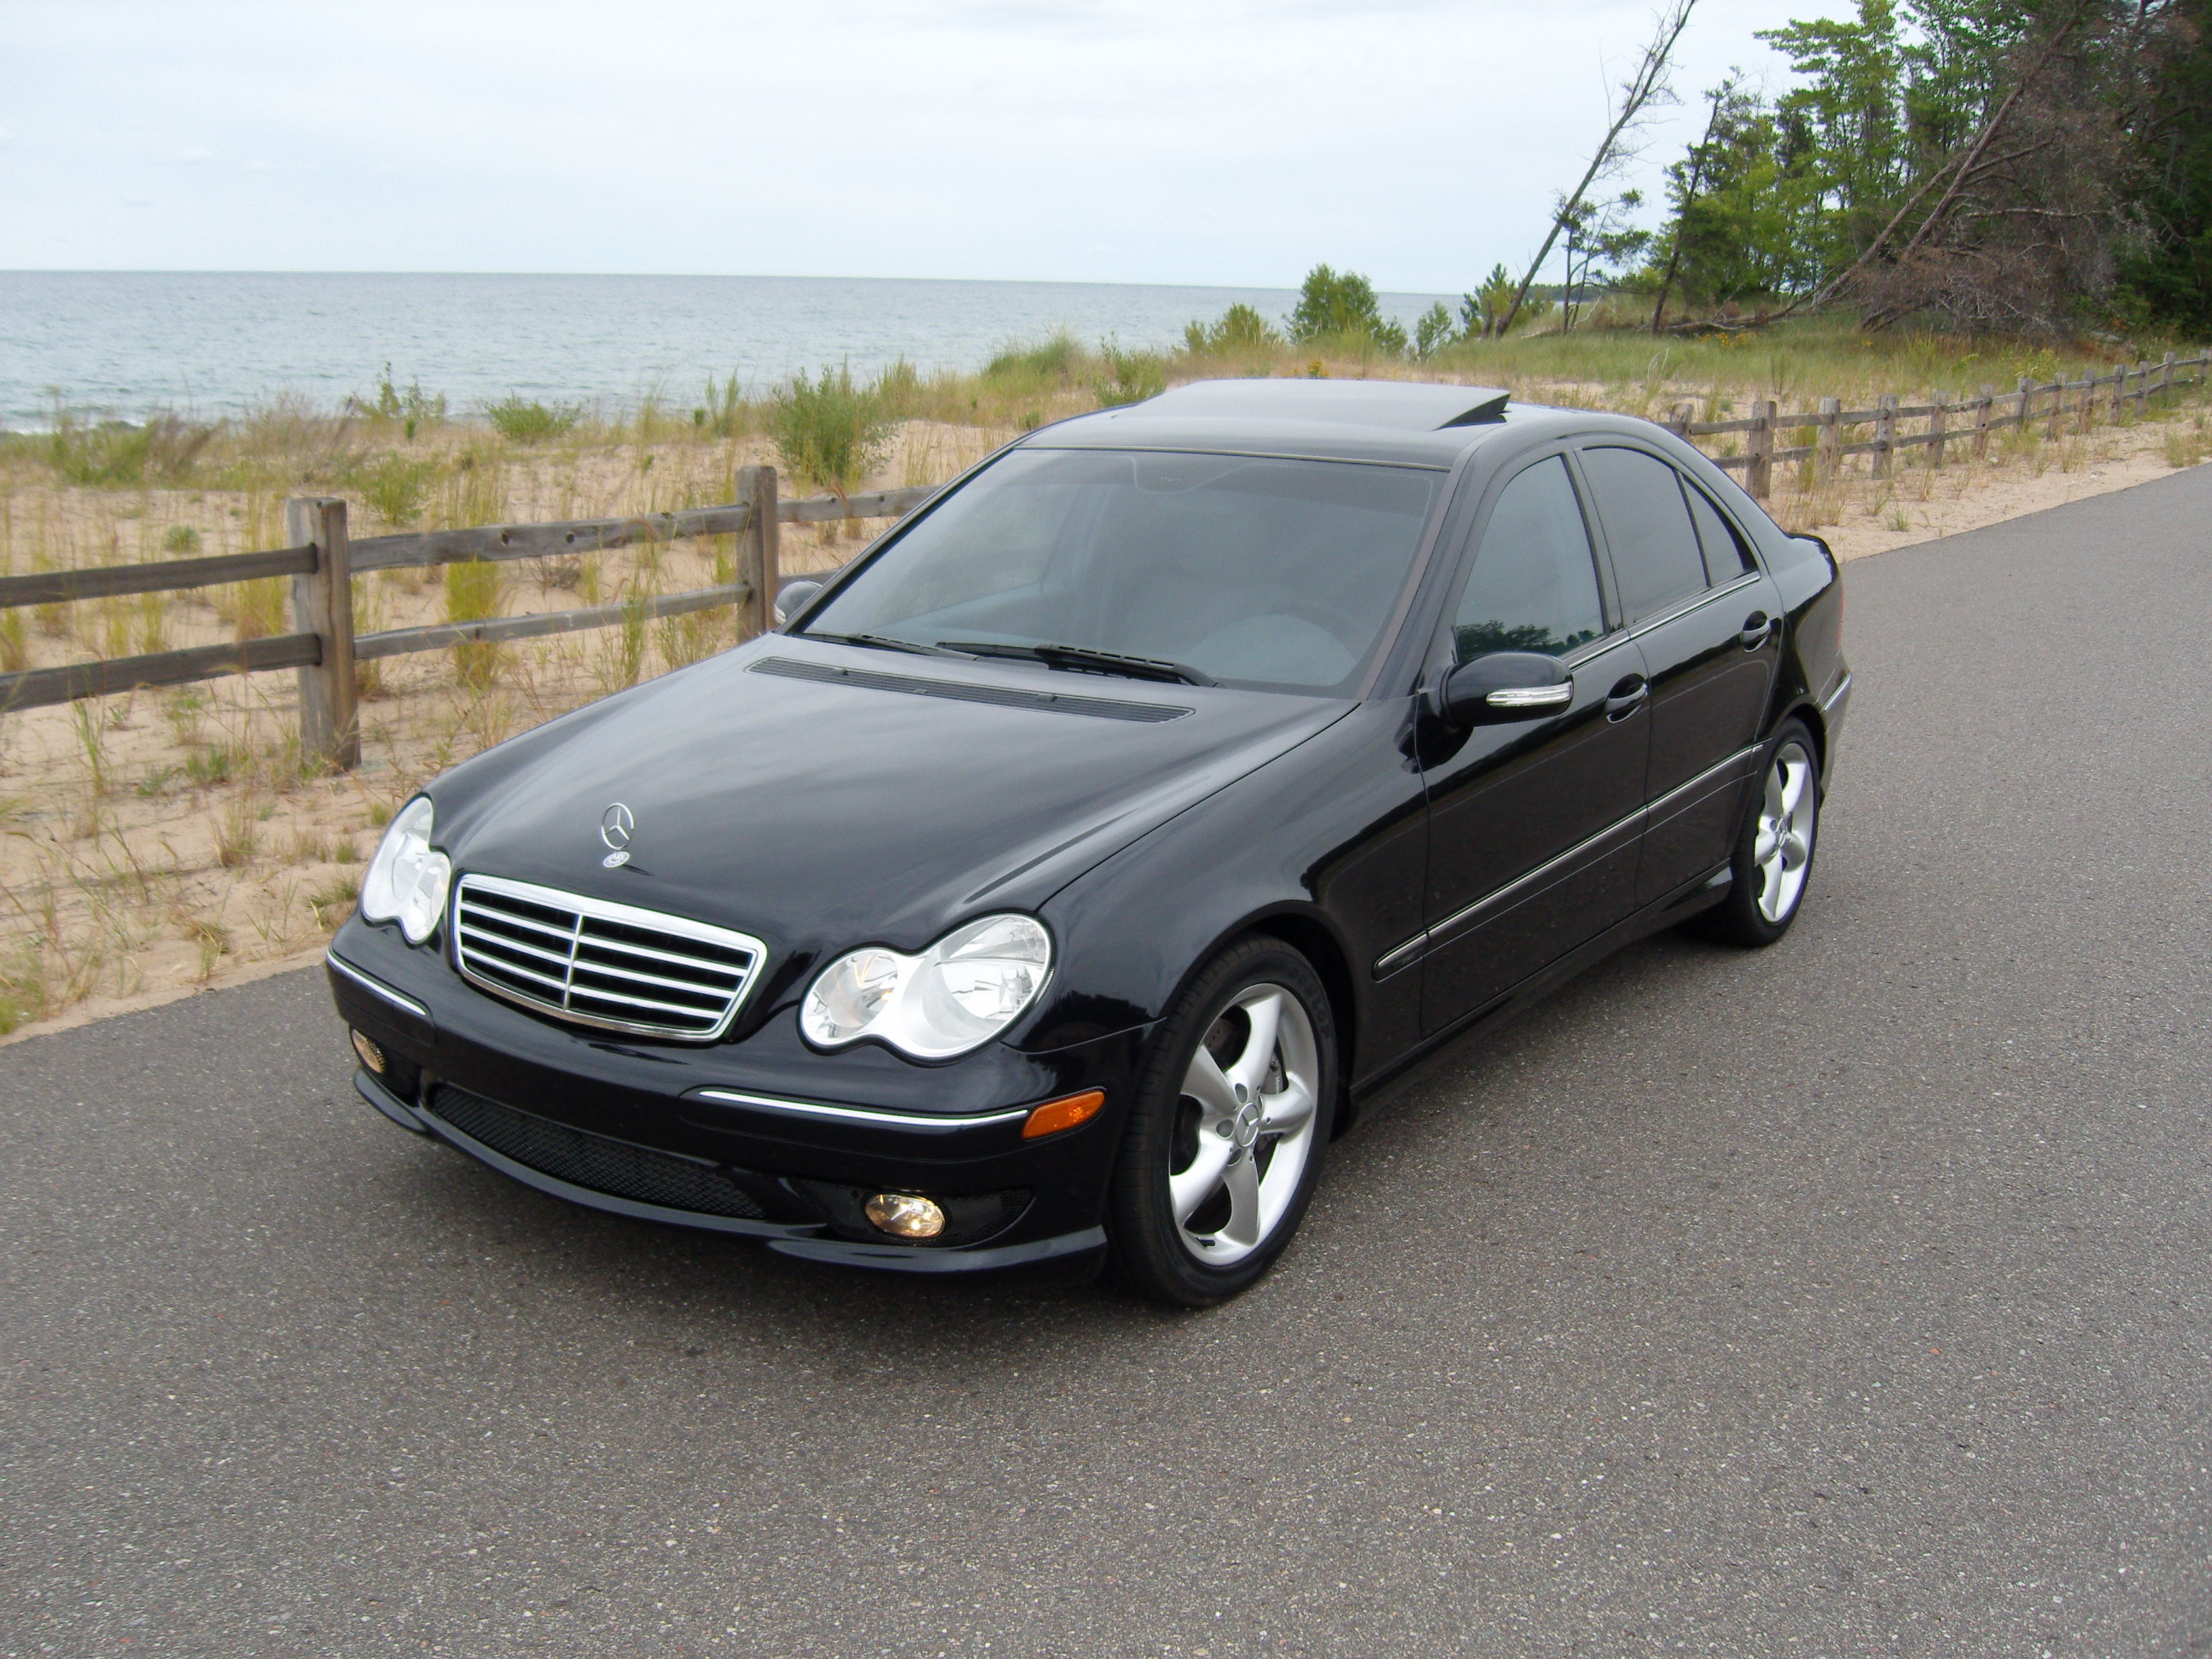 2005 mercedes c class partsopen. Black Bedroom Furniture Sets. Home Design Ideas